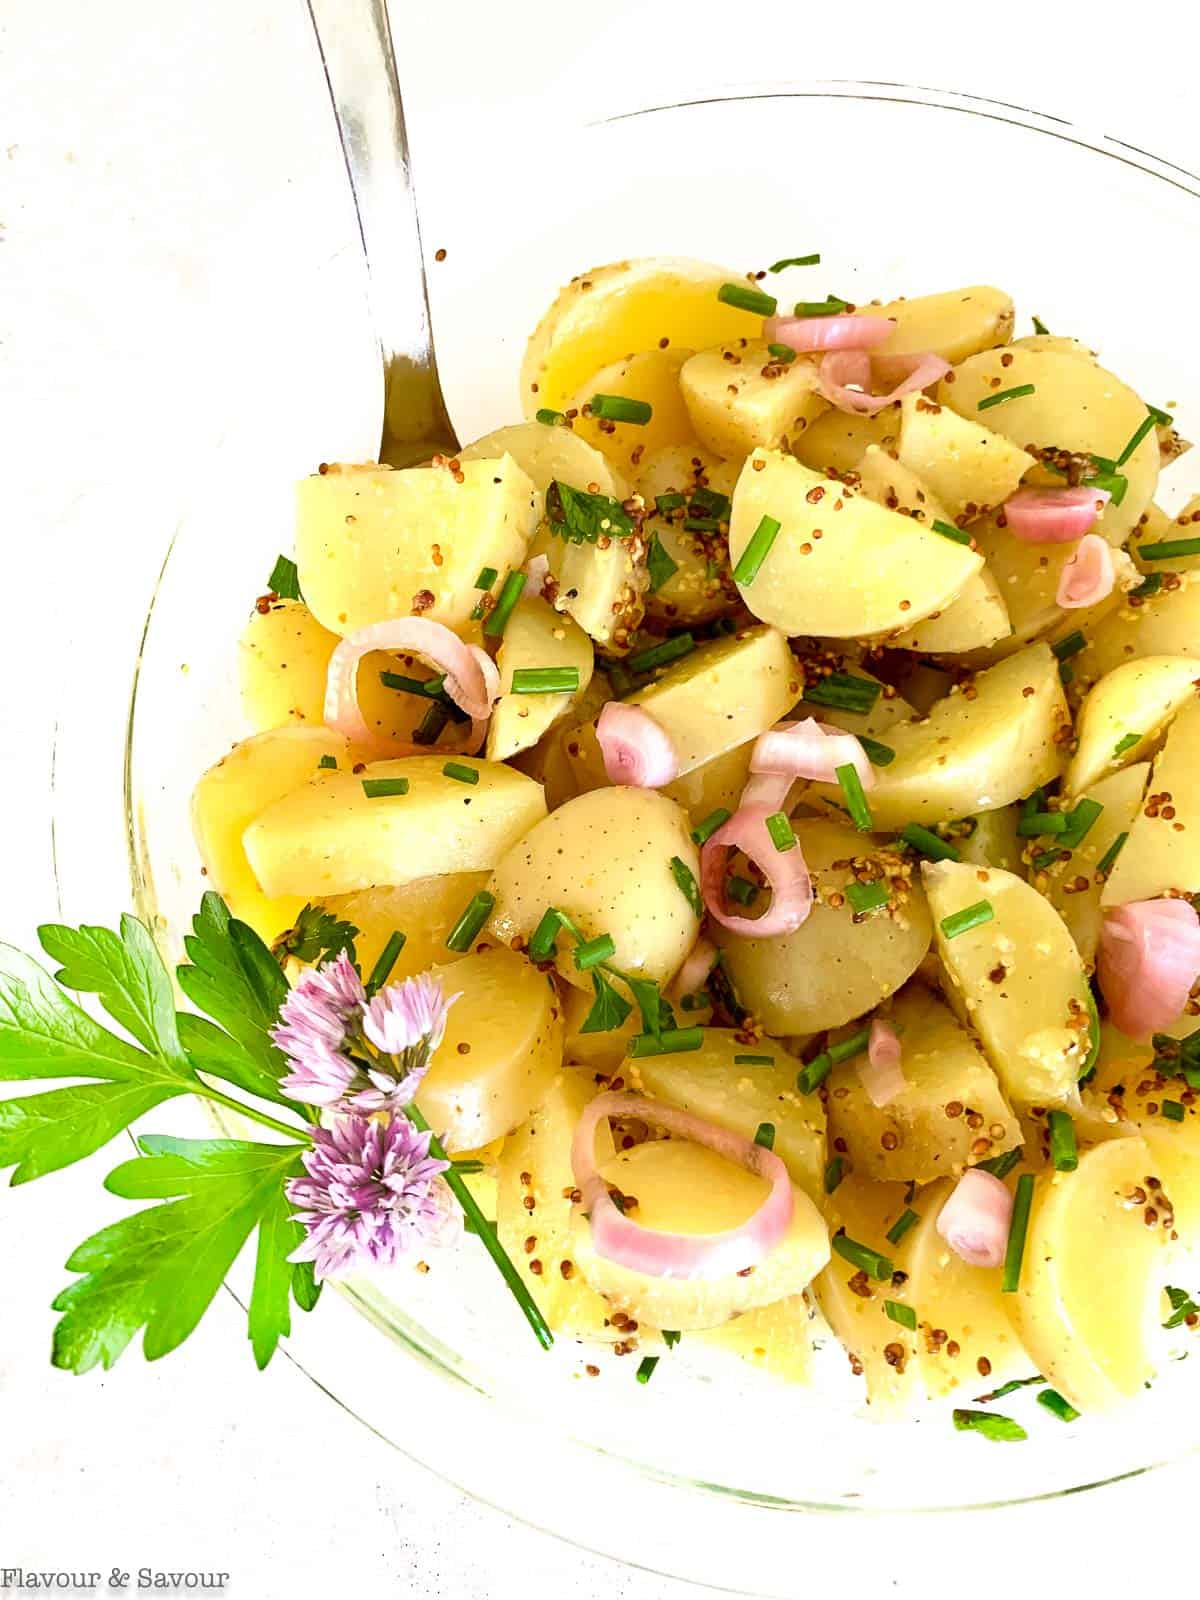 Close up view of Italian potato salad with pickled shallots and snipped chives